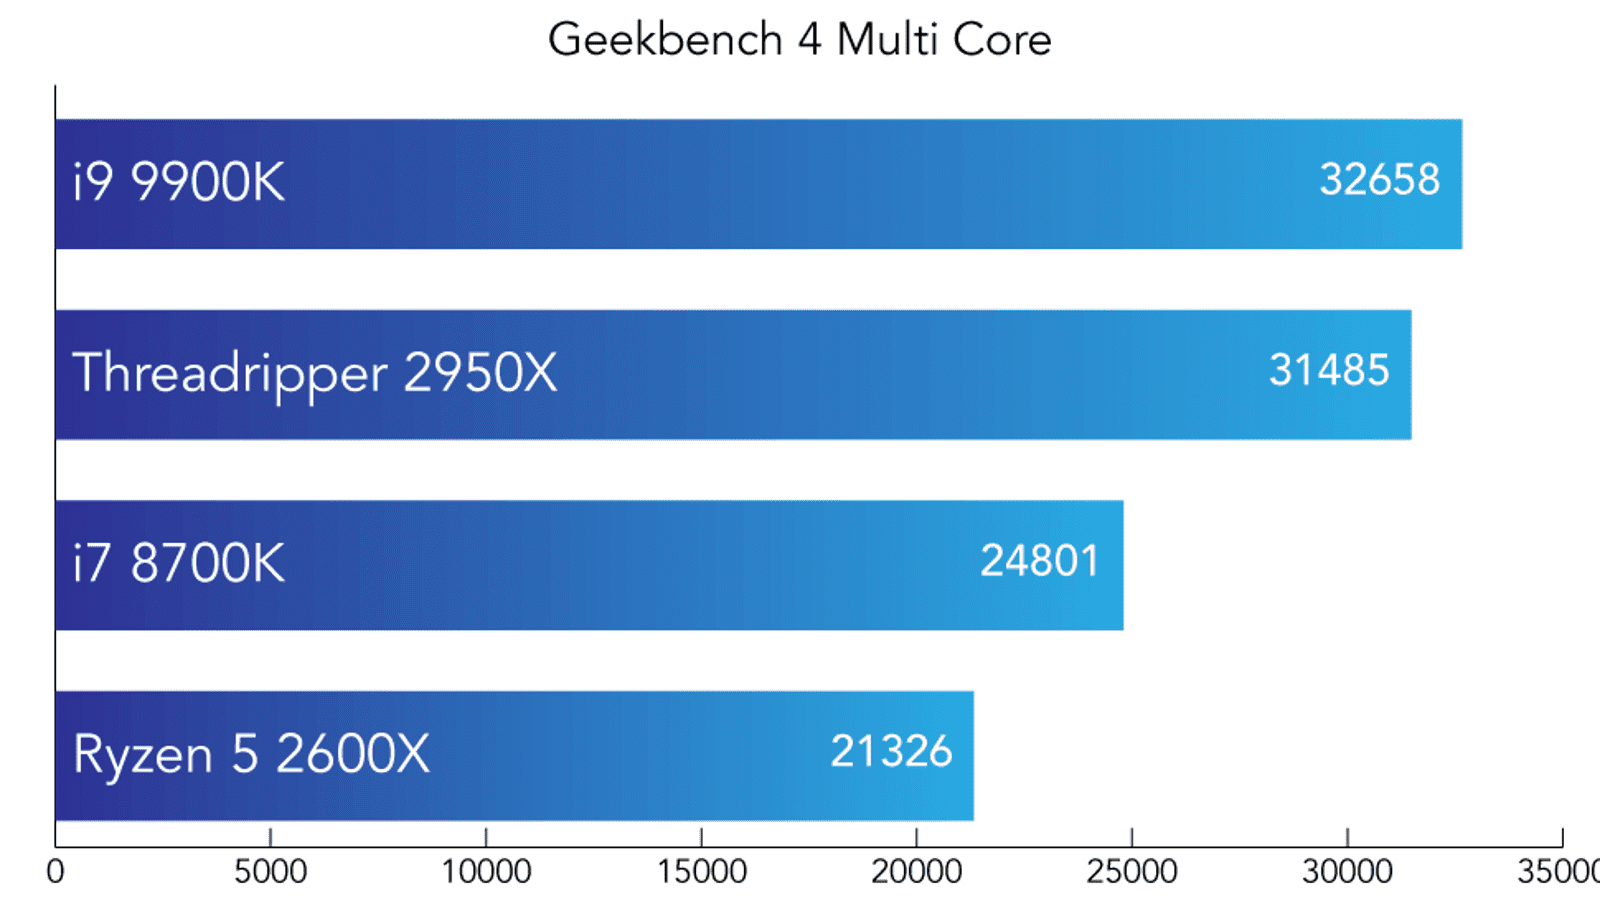 Multi core score in Geekbench 4. Higher is better.